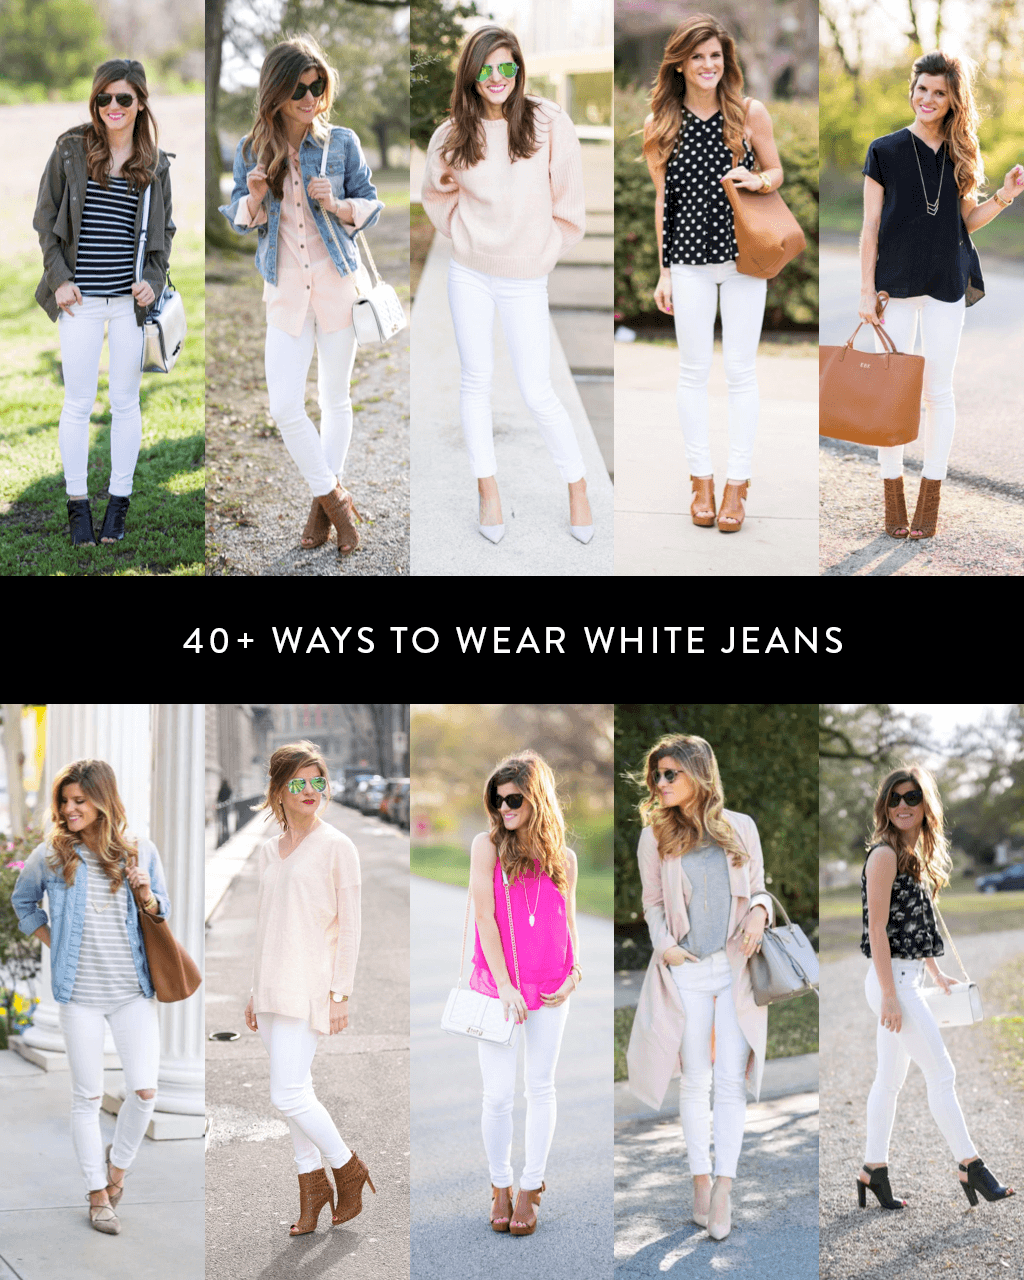 what to wear with white jeans, 40+ ways to wear white jeans, how to wear white jeans